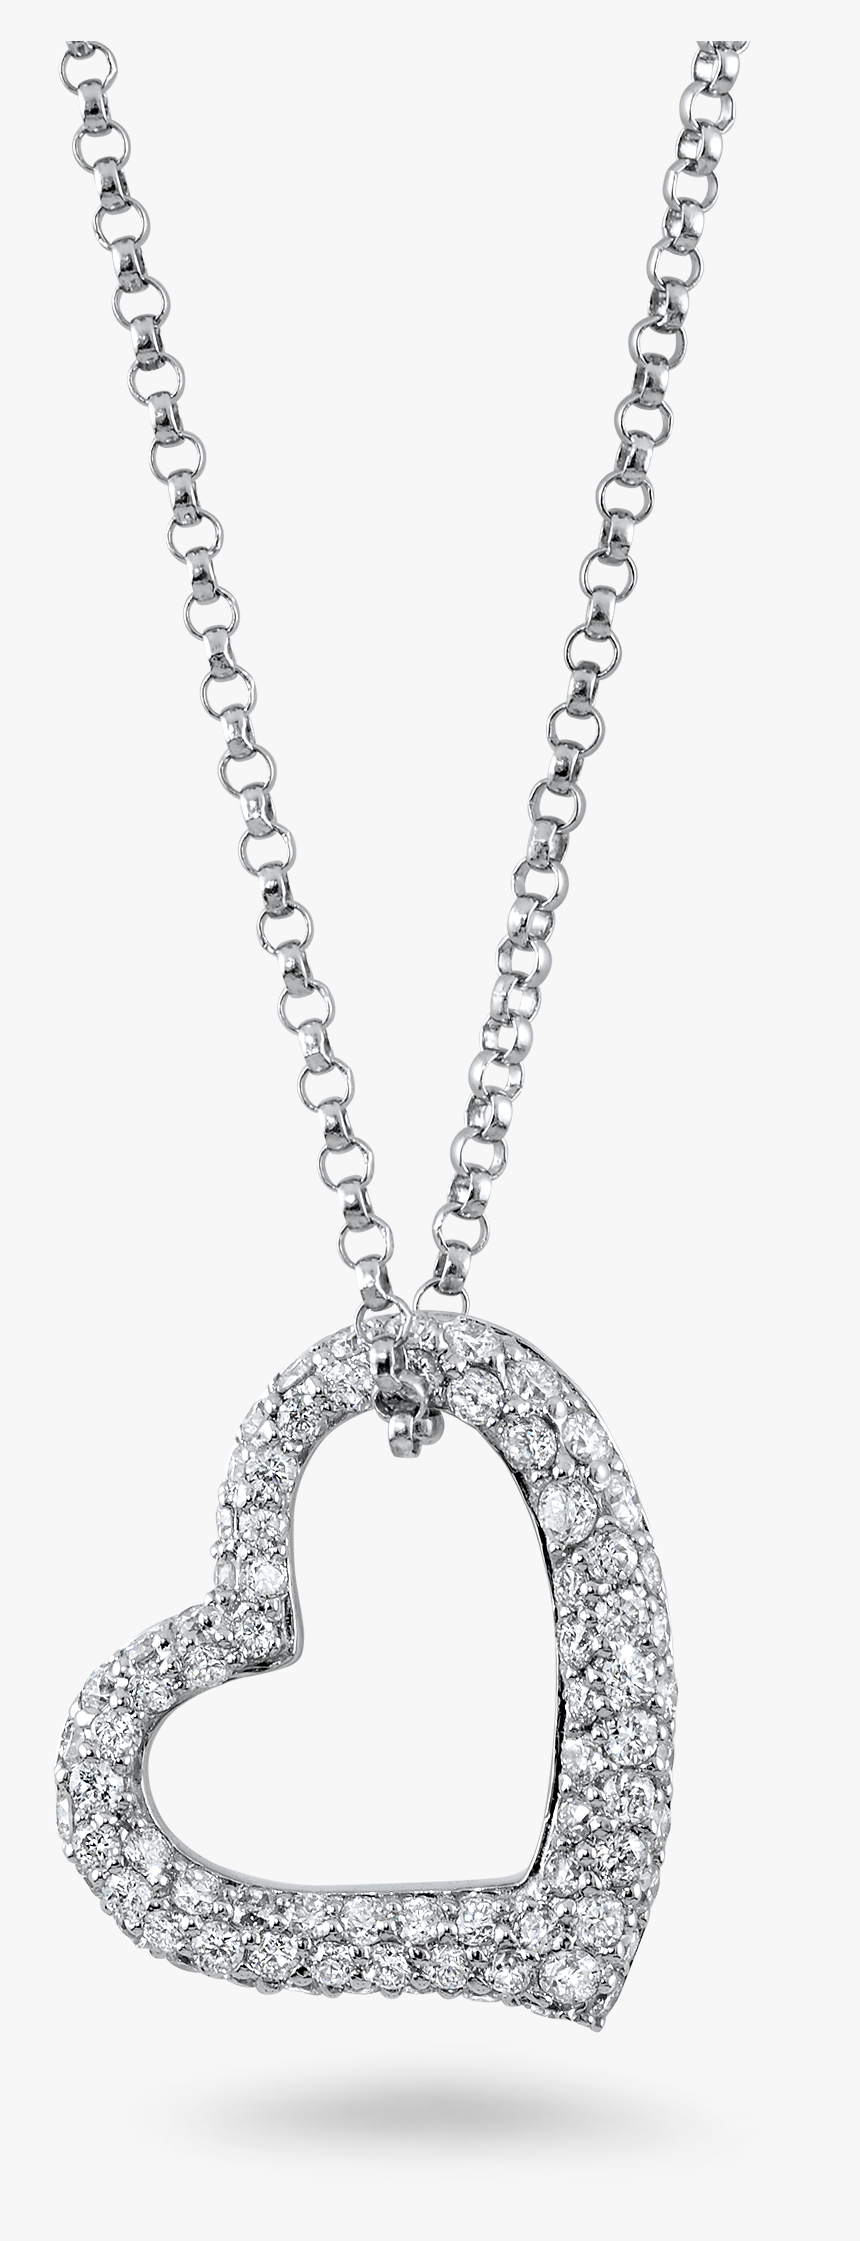 Diamond Necklace Png Photos - Beautiful Diamond Necklace Designs, Transparent Png, Free Download